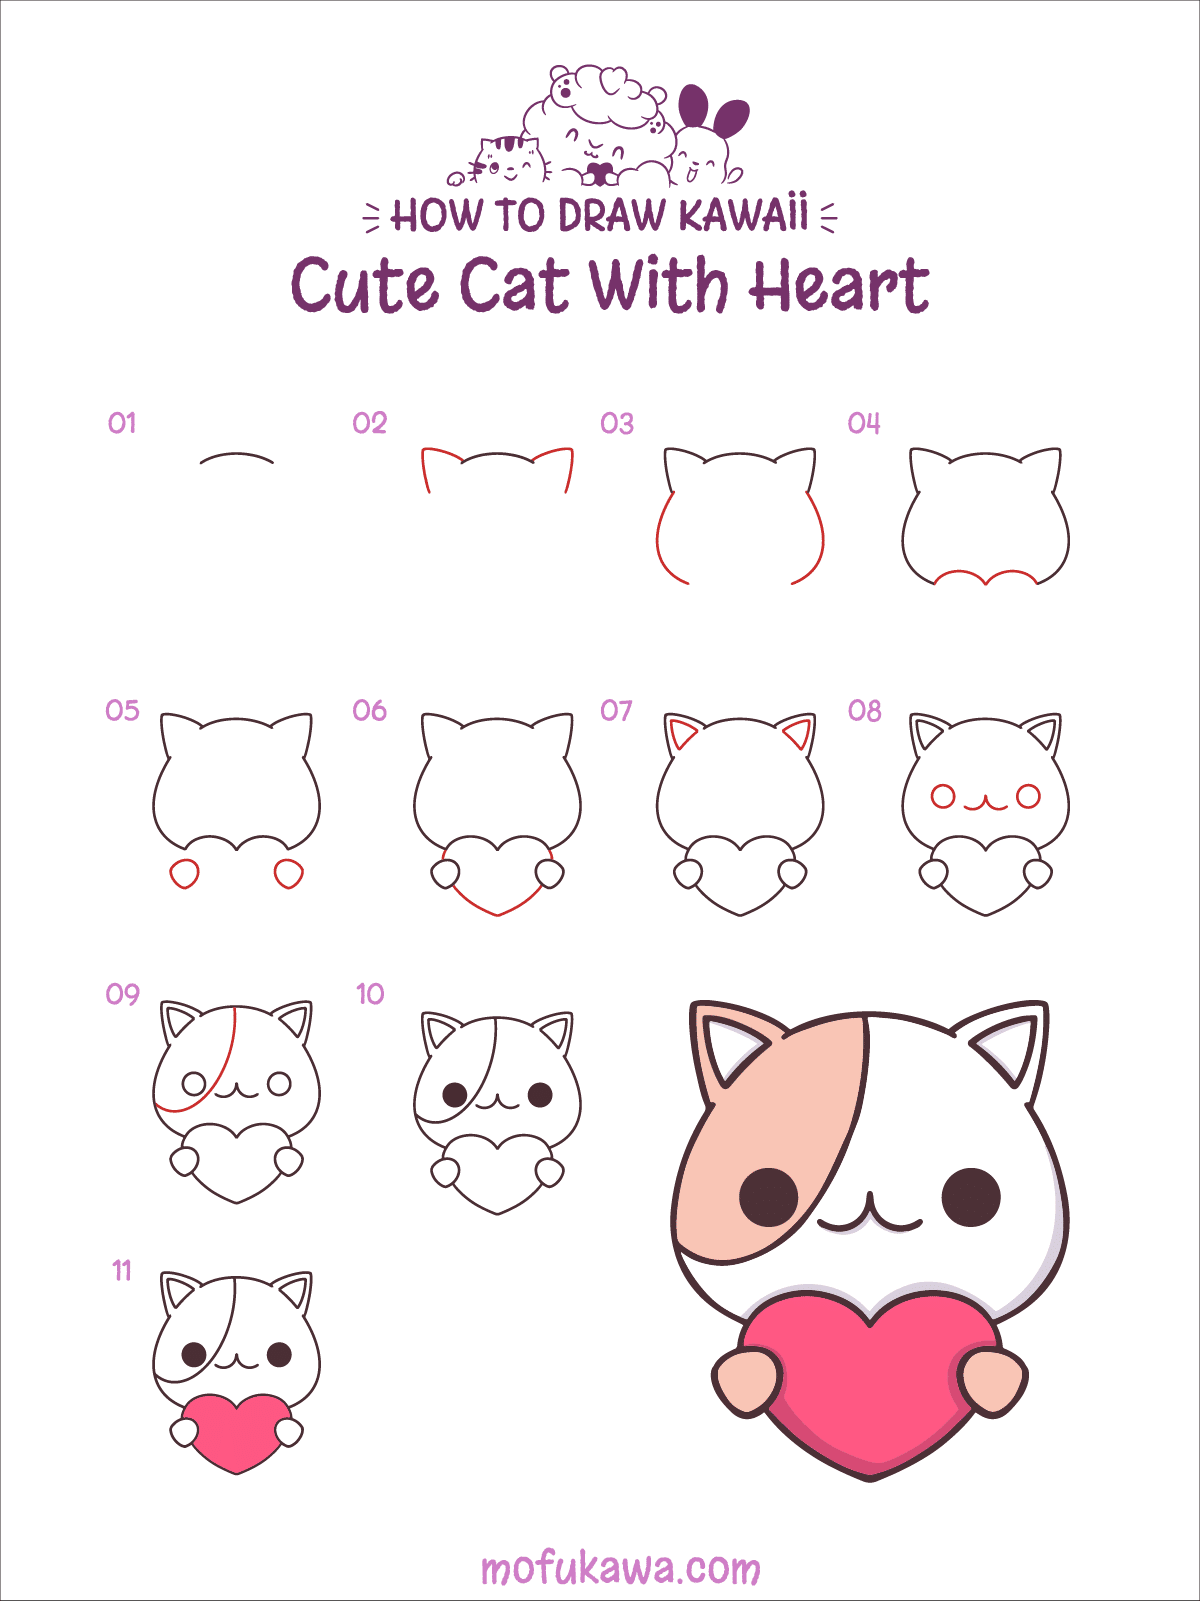 Cute Cat Pictures To Draw : pictures, Heart